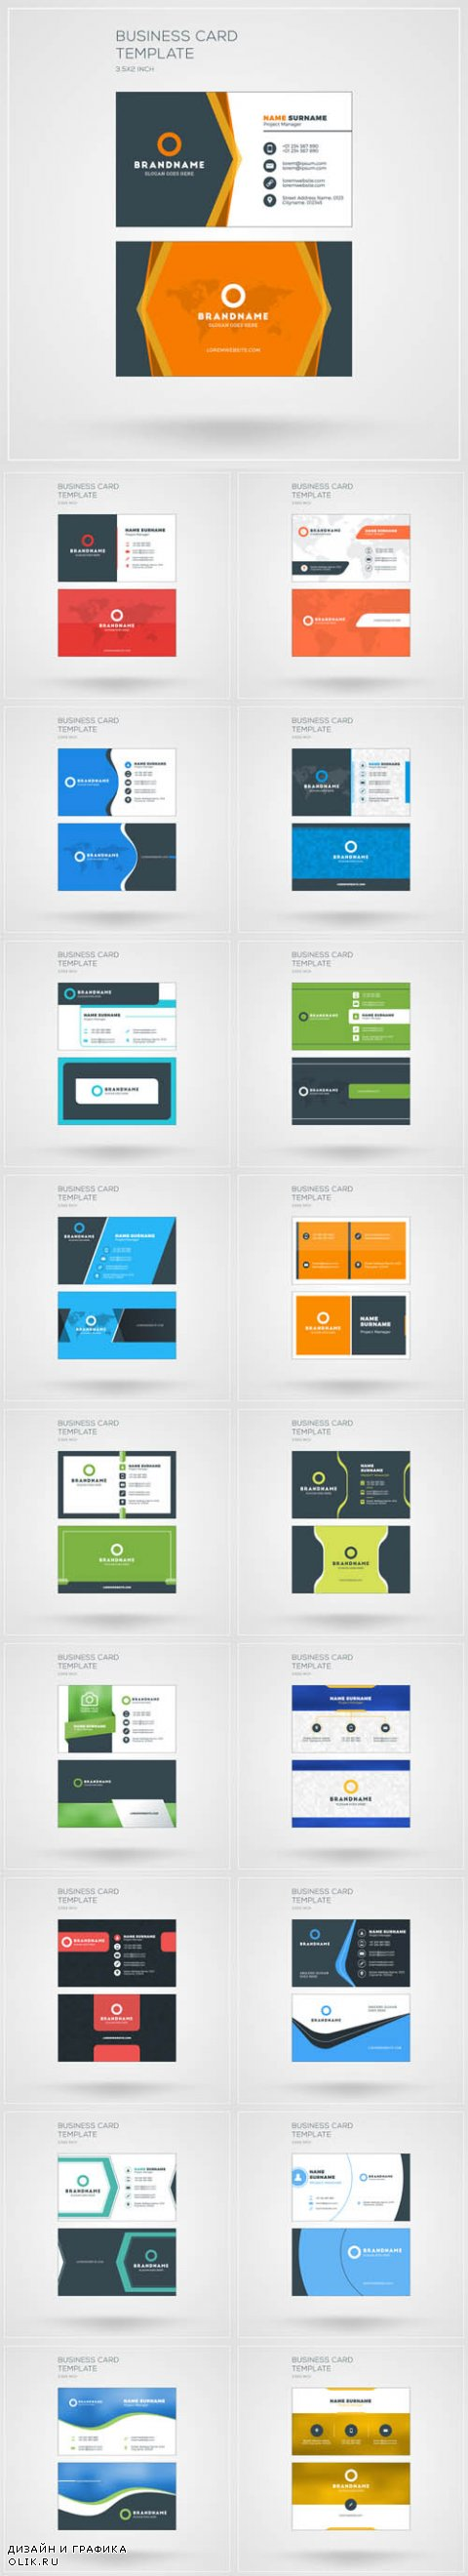 Vector Business Card Templates with Company Logo